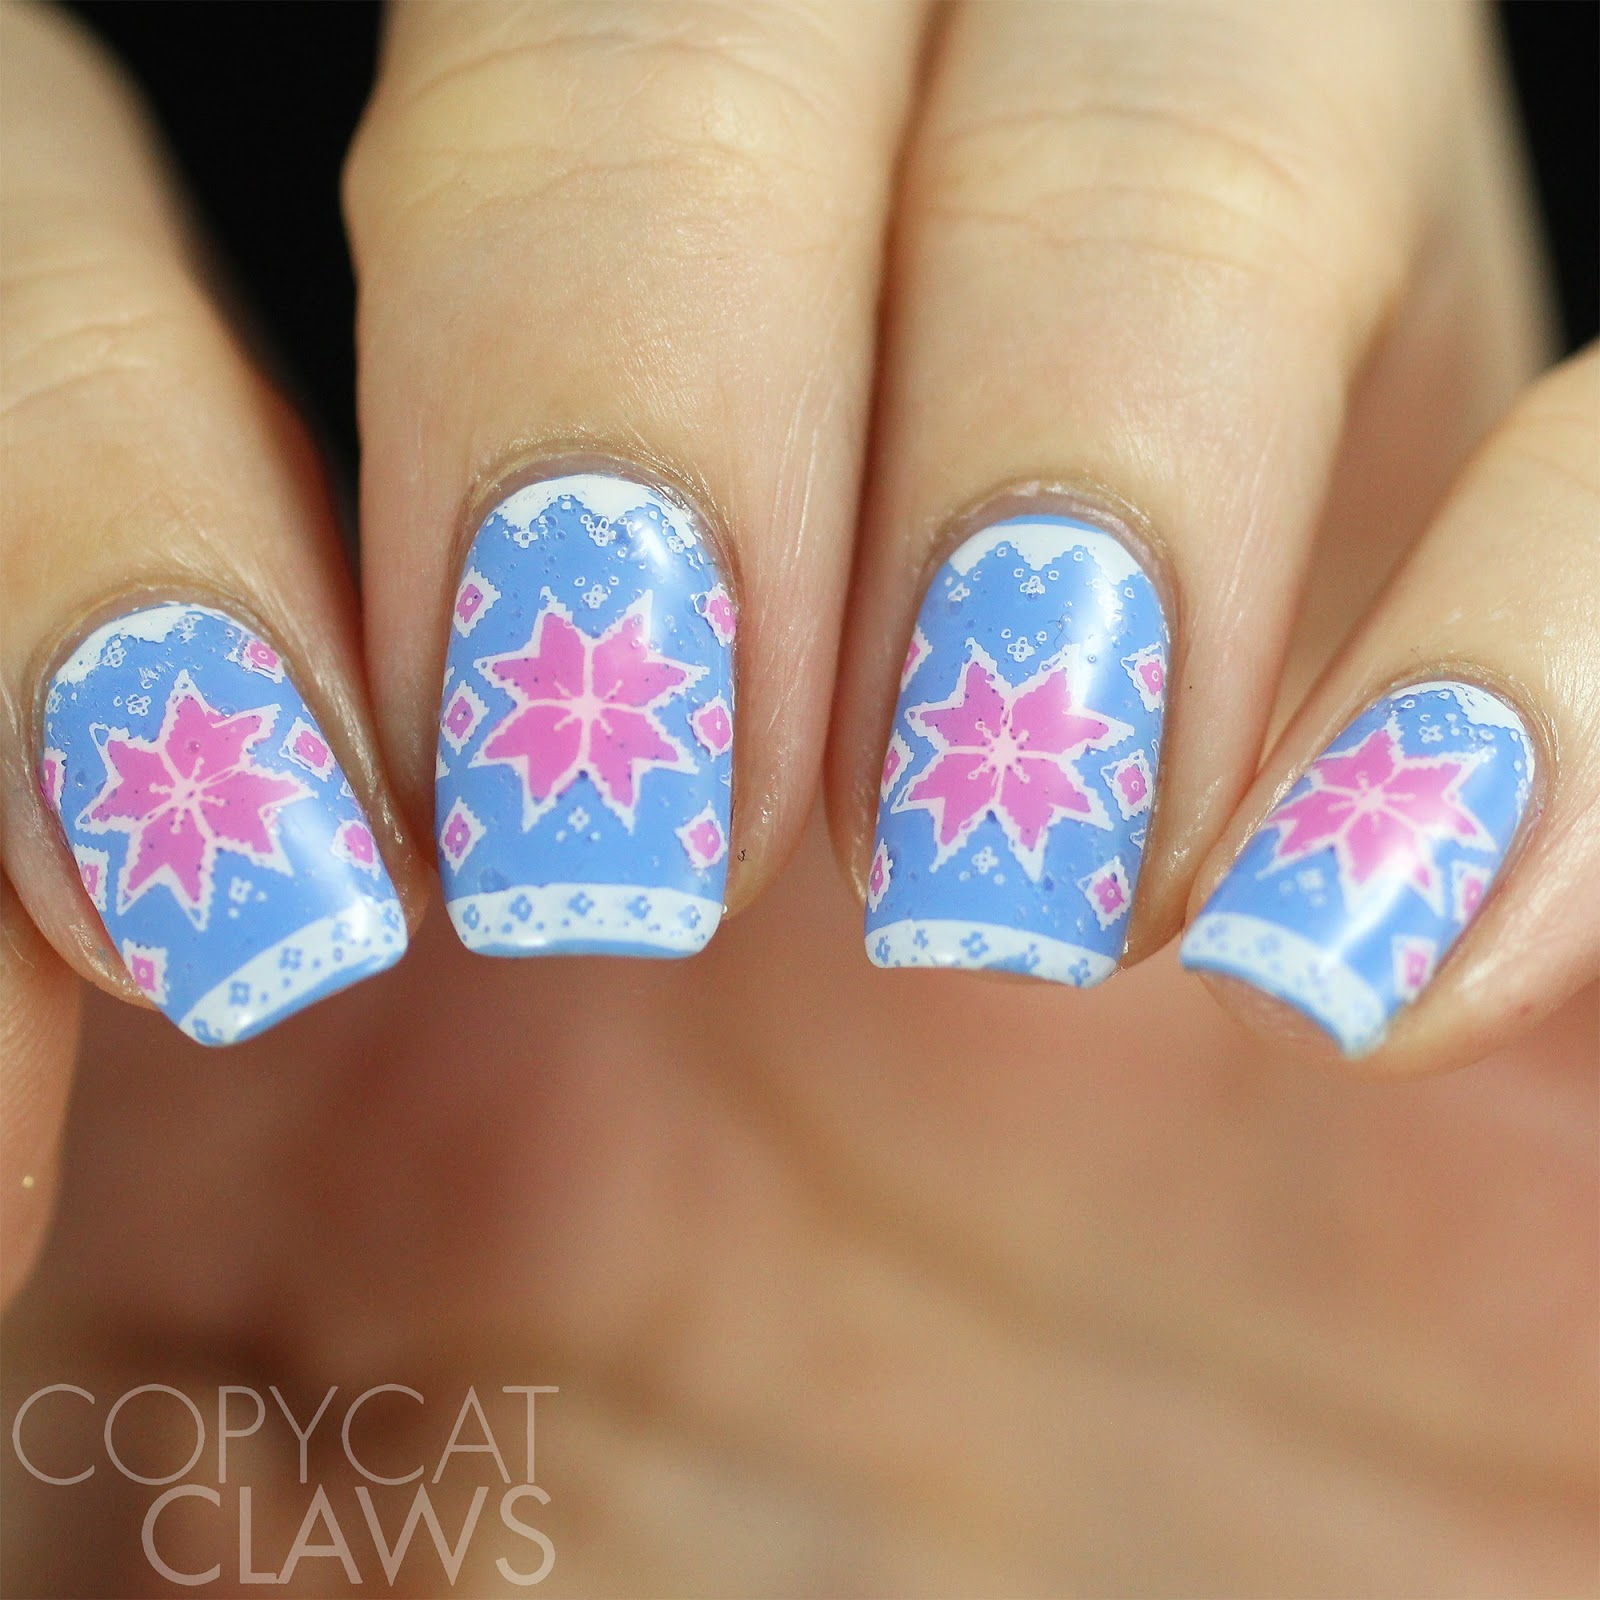 Copycat Claws: Nail Crazies Unite - Ugly Sweater